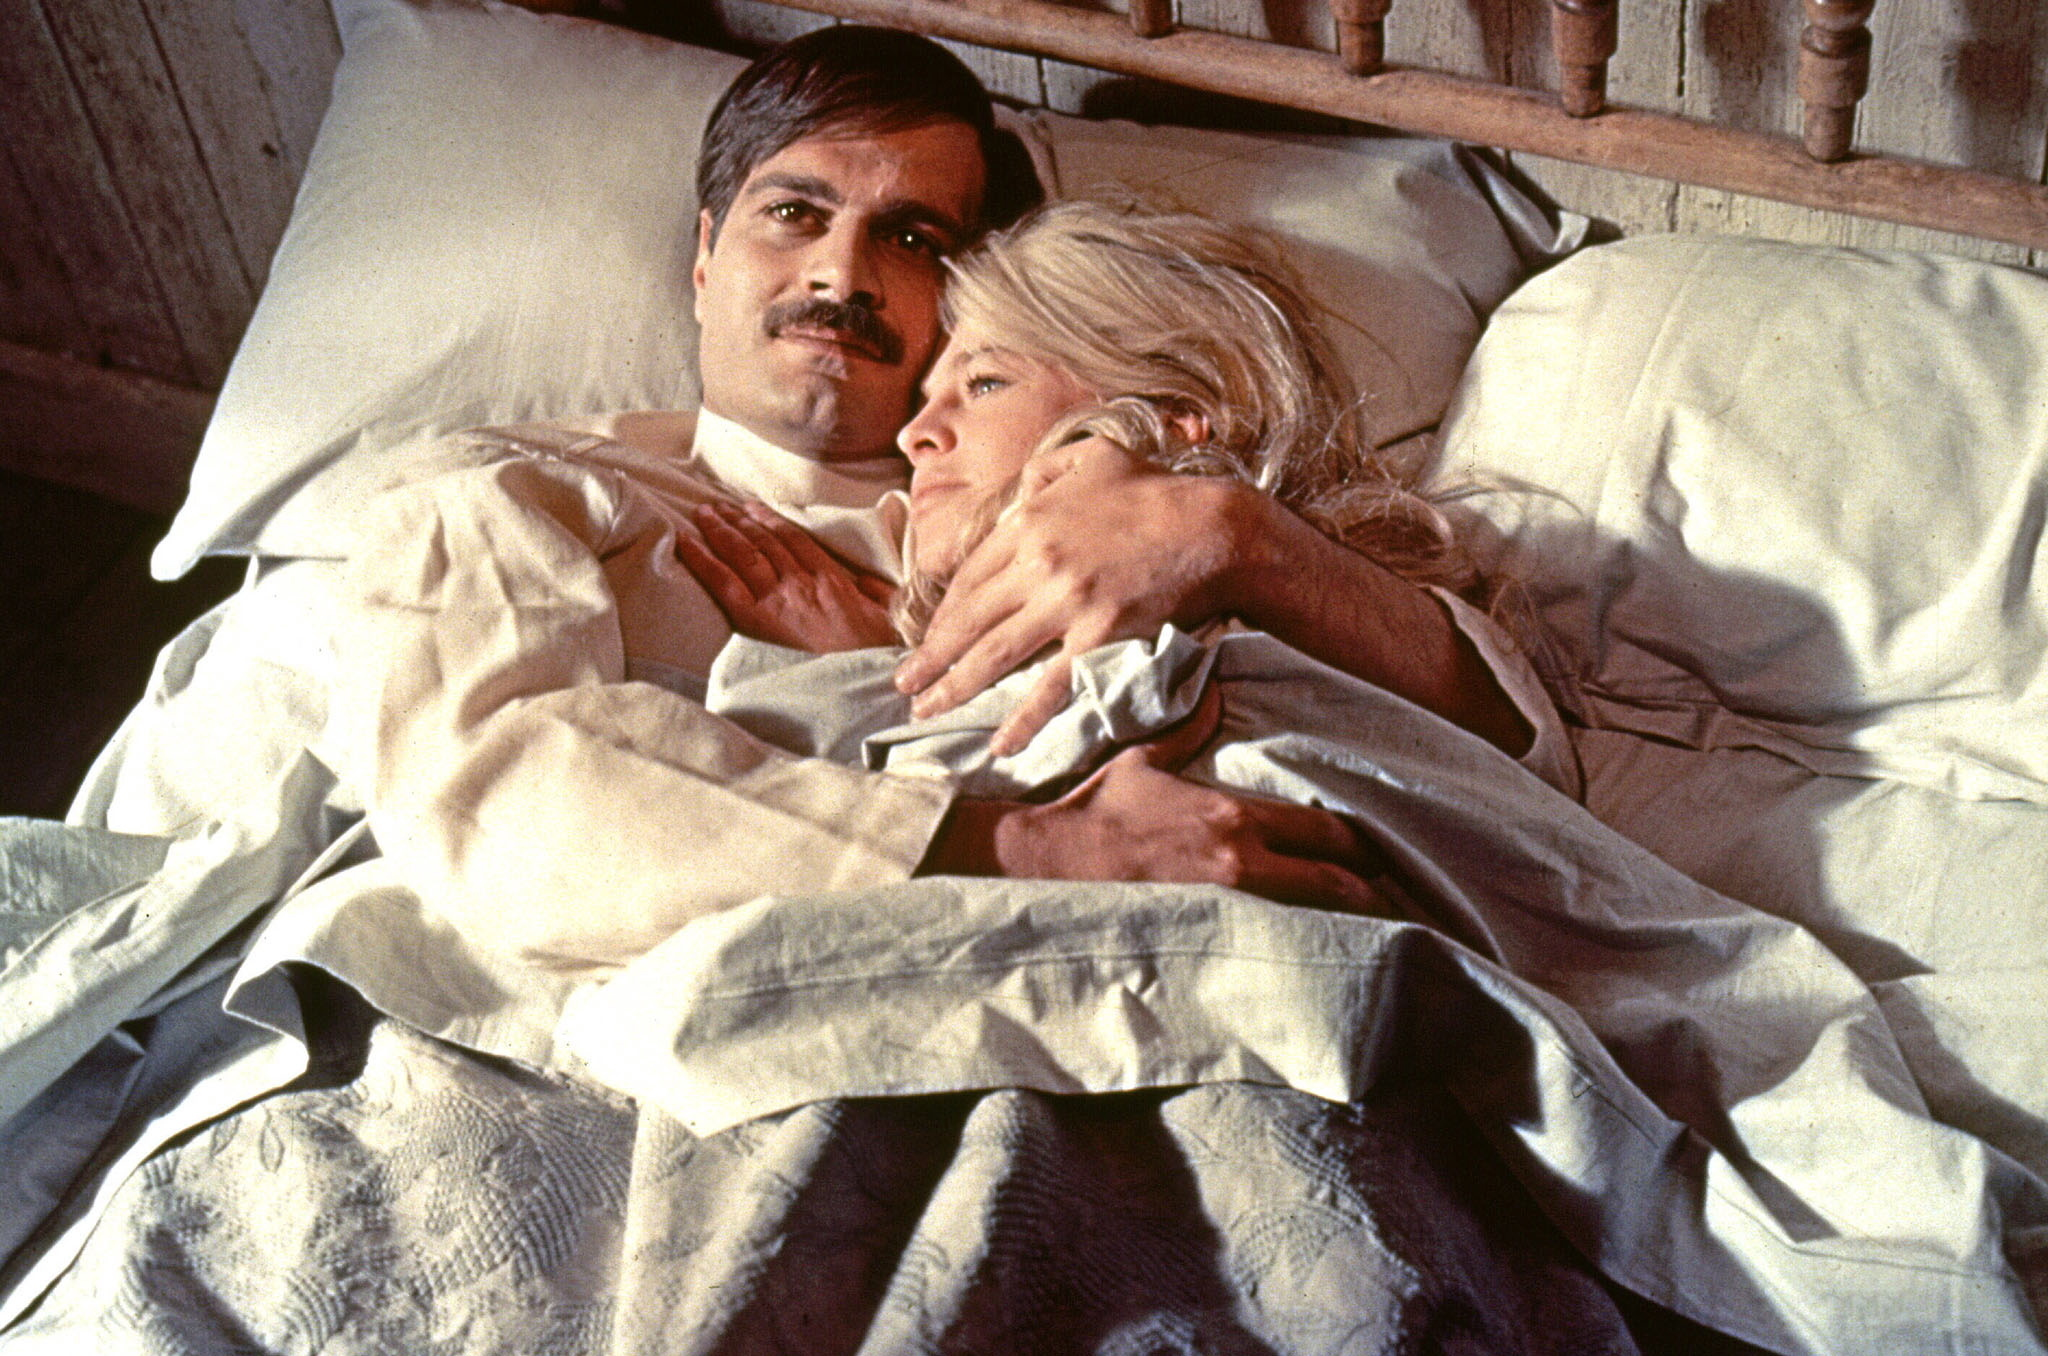 Romance movie: Doctor Zhivago